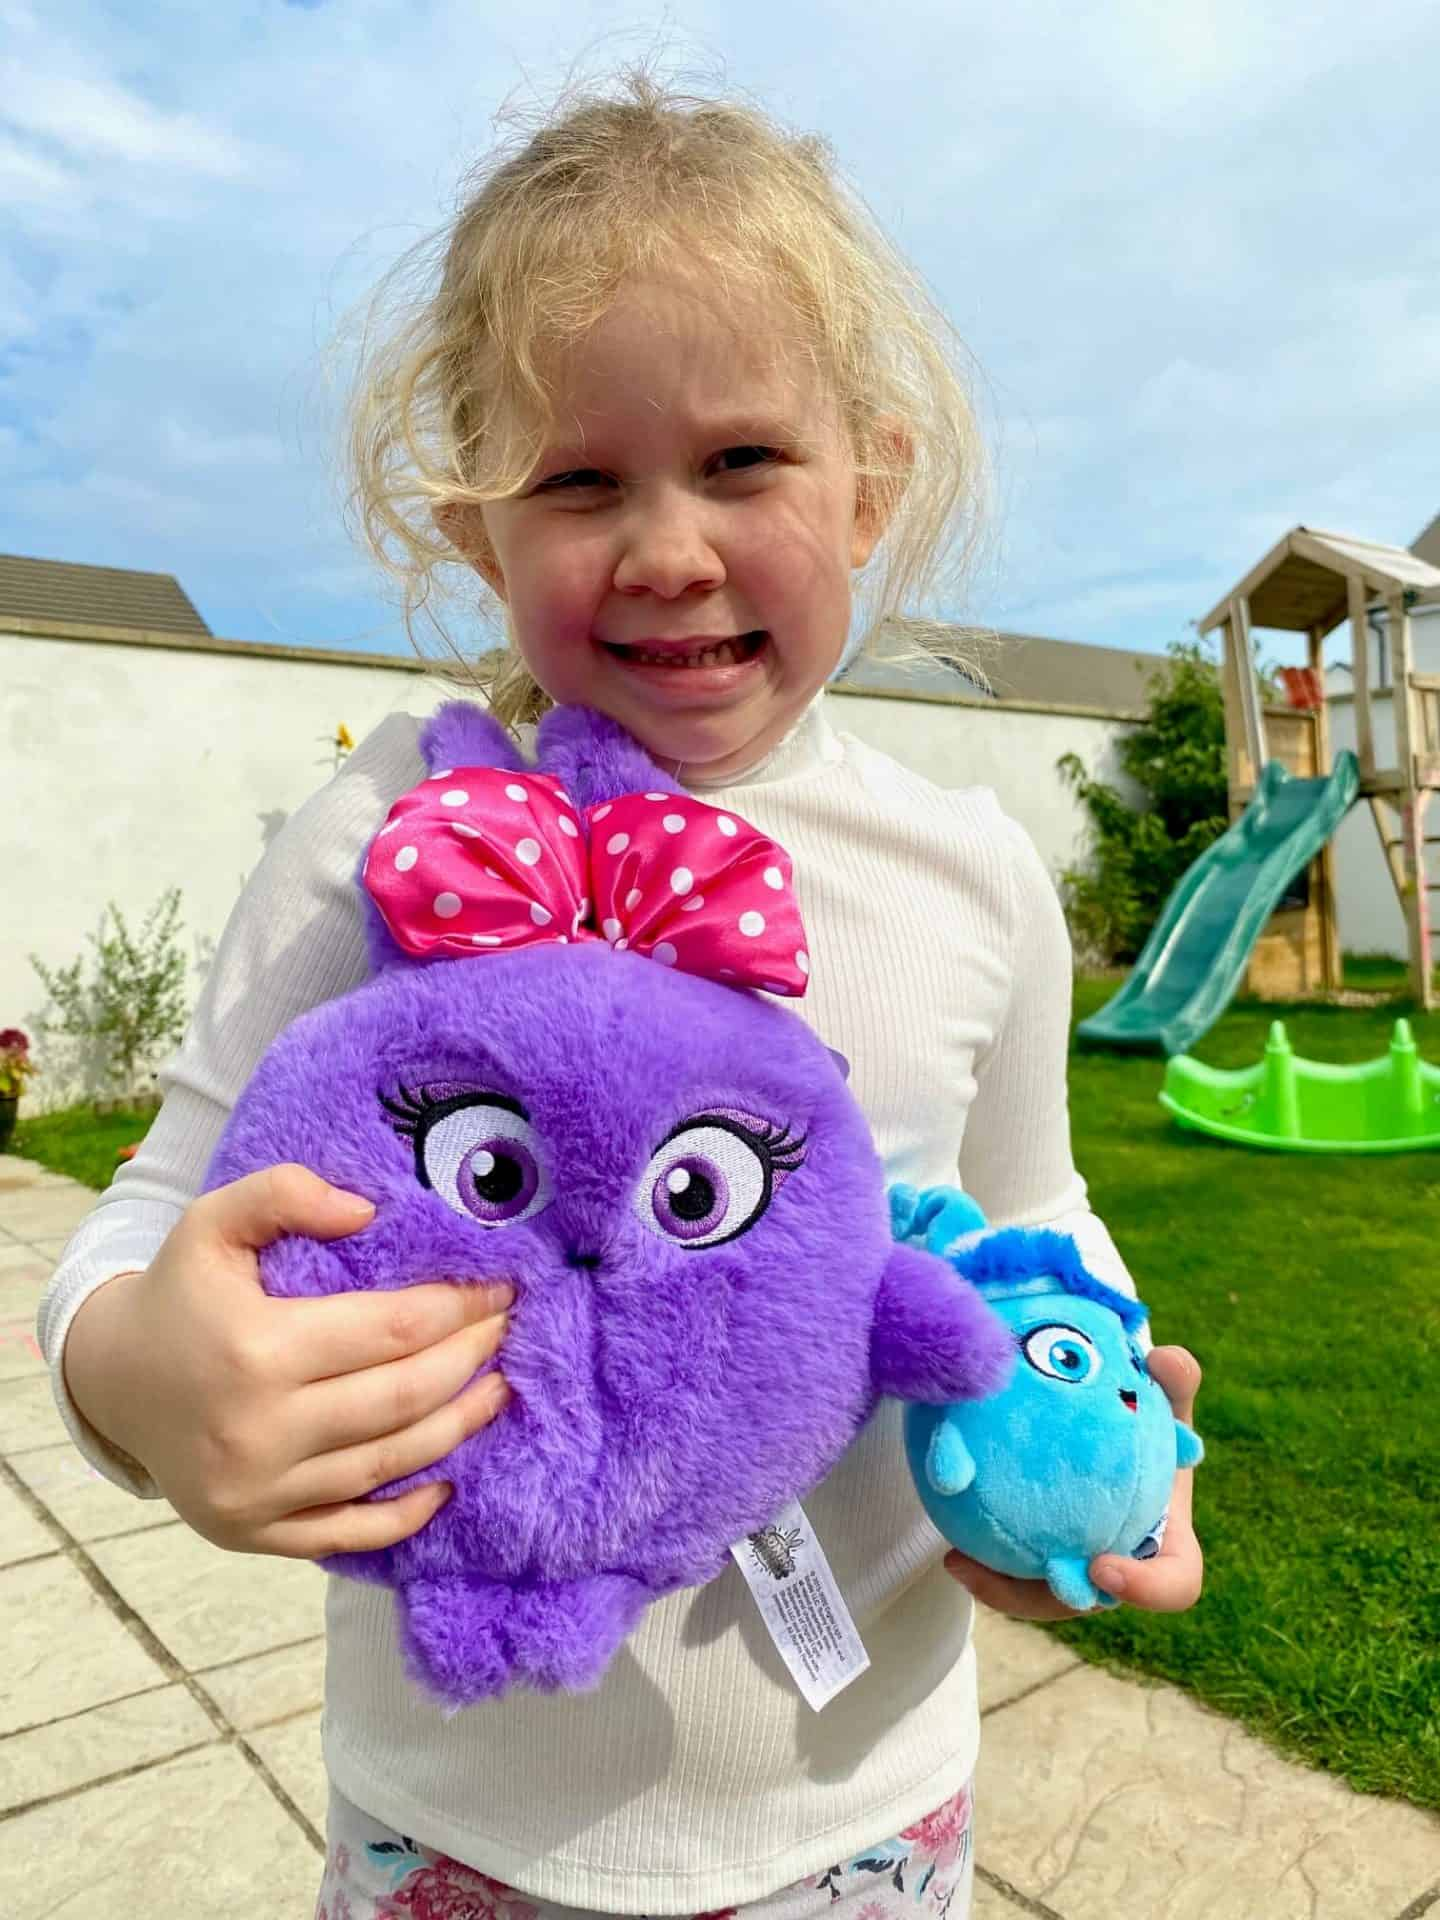 Sunny Bunnies Giggle & Hop Soft Toy Review and Giveaway